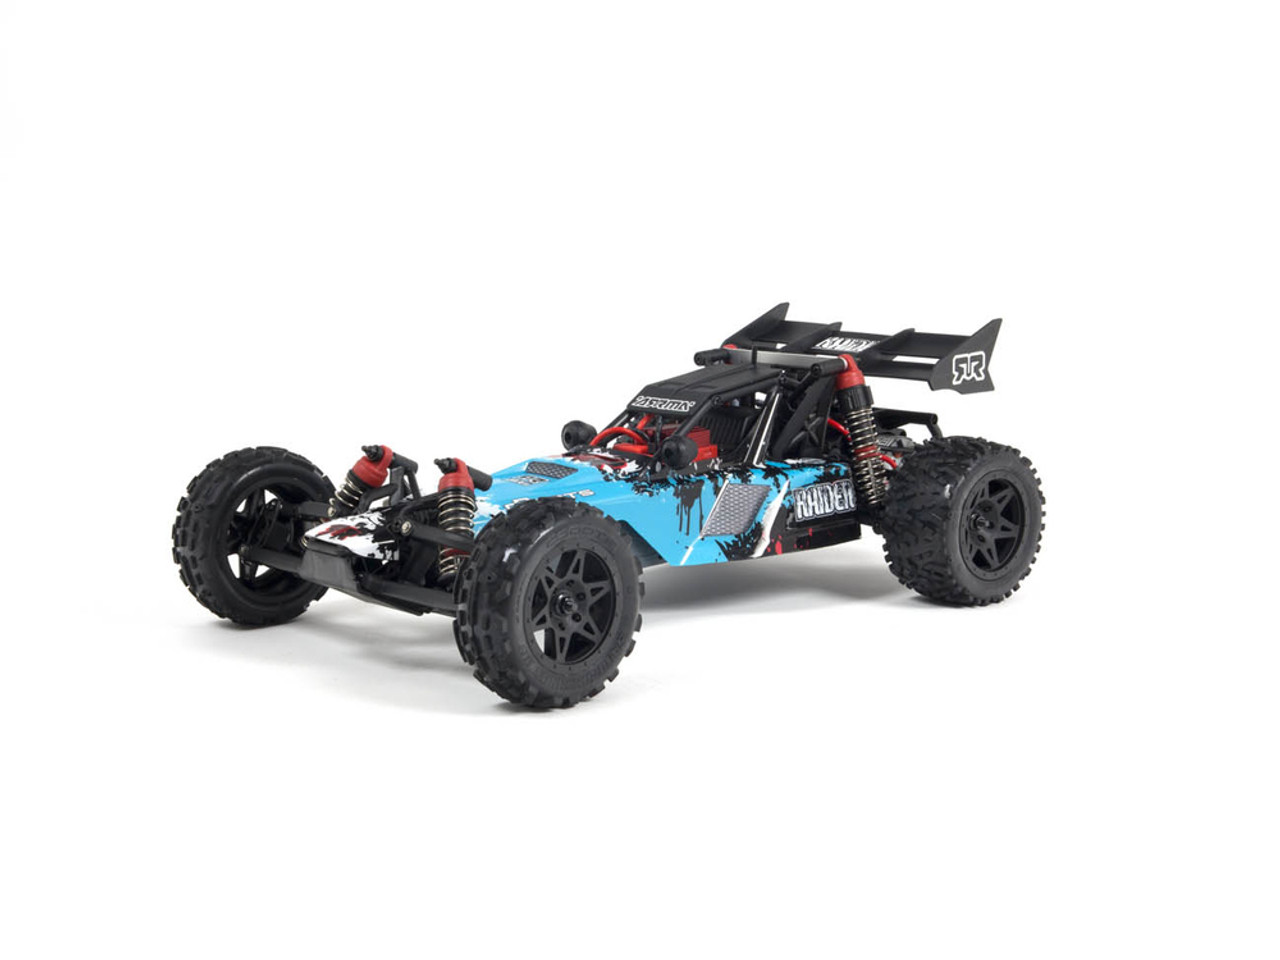 The ARRMA RAIDER Dune Buggy is built for extreme terrain and will also provide exciting performance during asphalt thrashing RC sessions.